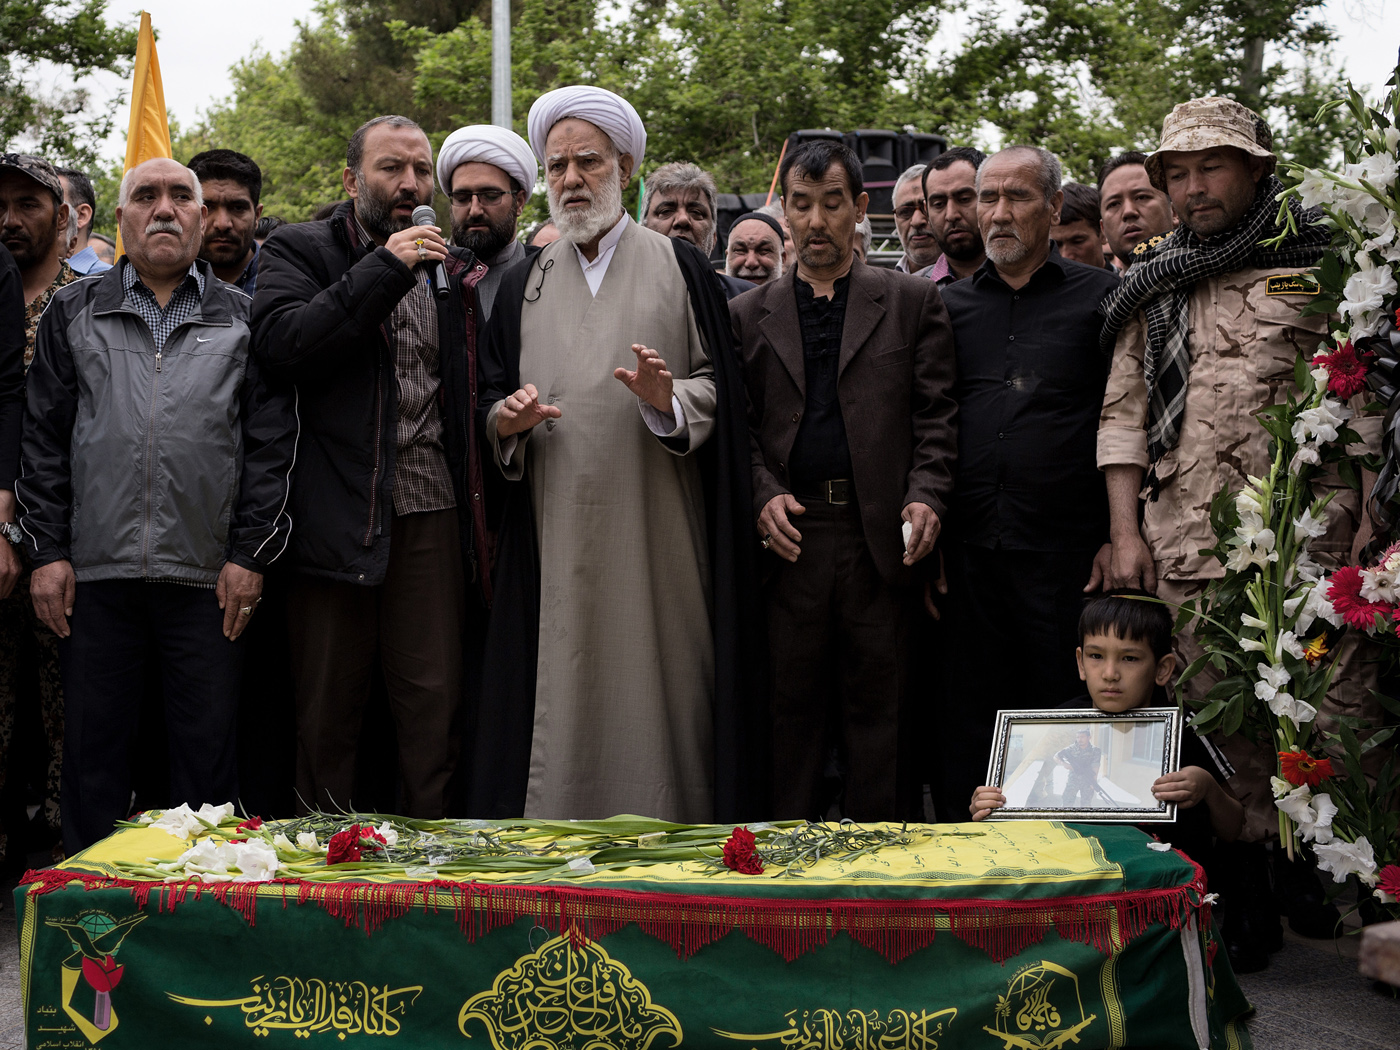 Volunteers pray to the corpse of Alireza Akbari after carrying it through the Fallah neighbourhood of Tehran on Thursday April 18th, 2019 in celebration and mourning of his martyrdom. Alireza Akbari died in Syria four years earlier serving the Fatemioun brigade which is a military unit connected to the Islamic Revolutionary Guards in which Afghan citizens serve. Many of its members are refugees residing in Iran. It has been active in the Syrian conflict over the past years.